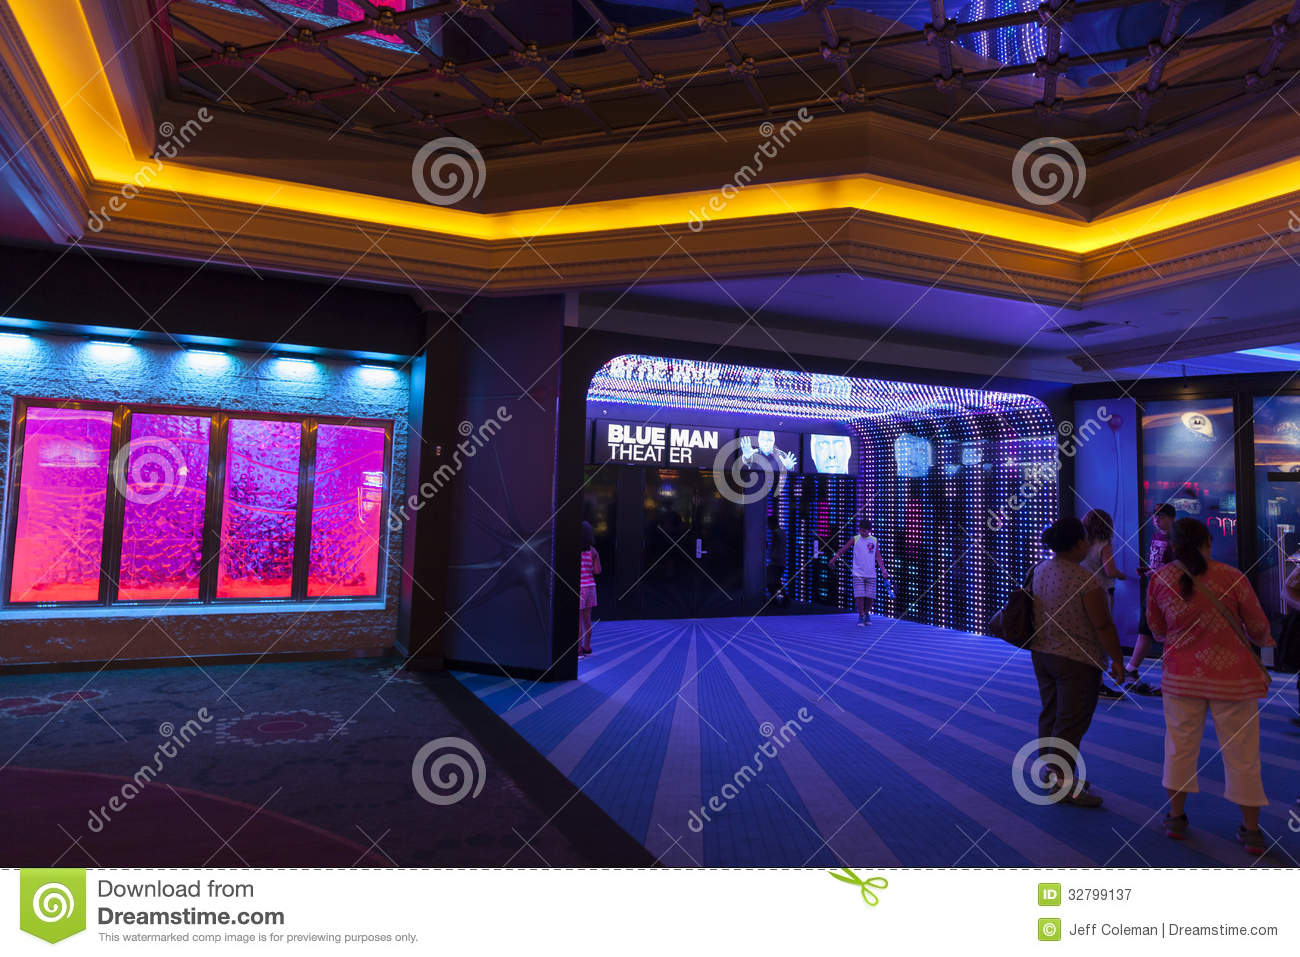 Blue Man Theater Entrance At Monte Carlo In Las Vegas, NV On Aug ...